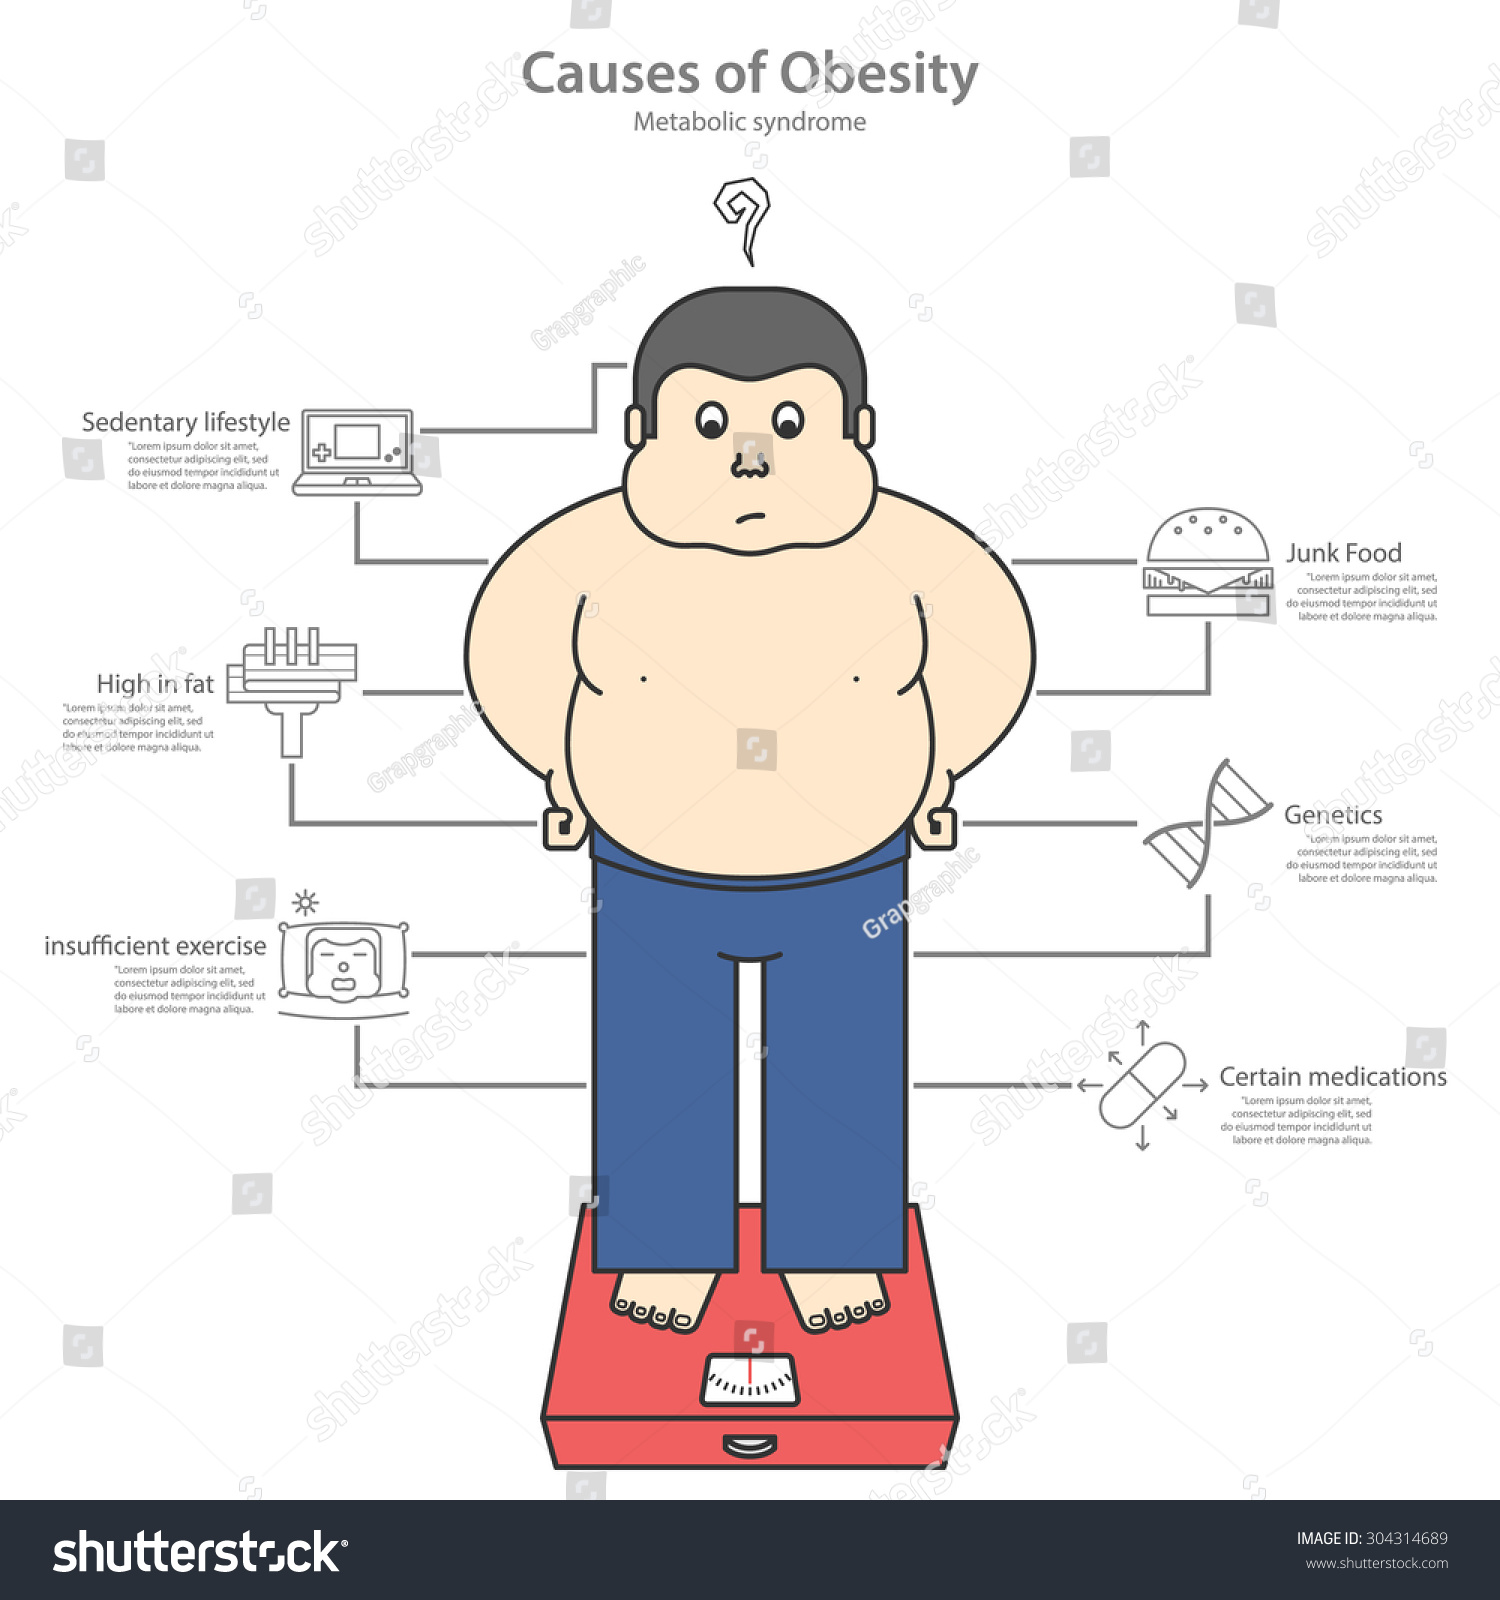 illustration on obesity Get the facts on obesity and being overweight, including the health risks, causes, reviews of weight-loss diet plans, surgical and nonsurgical treatments, and.